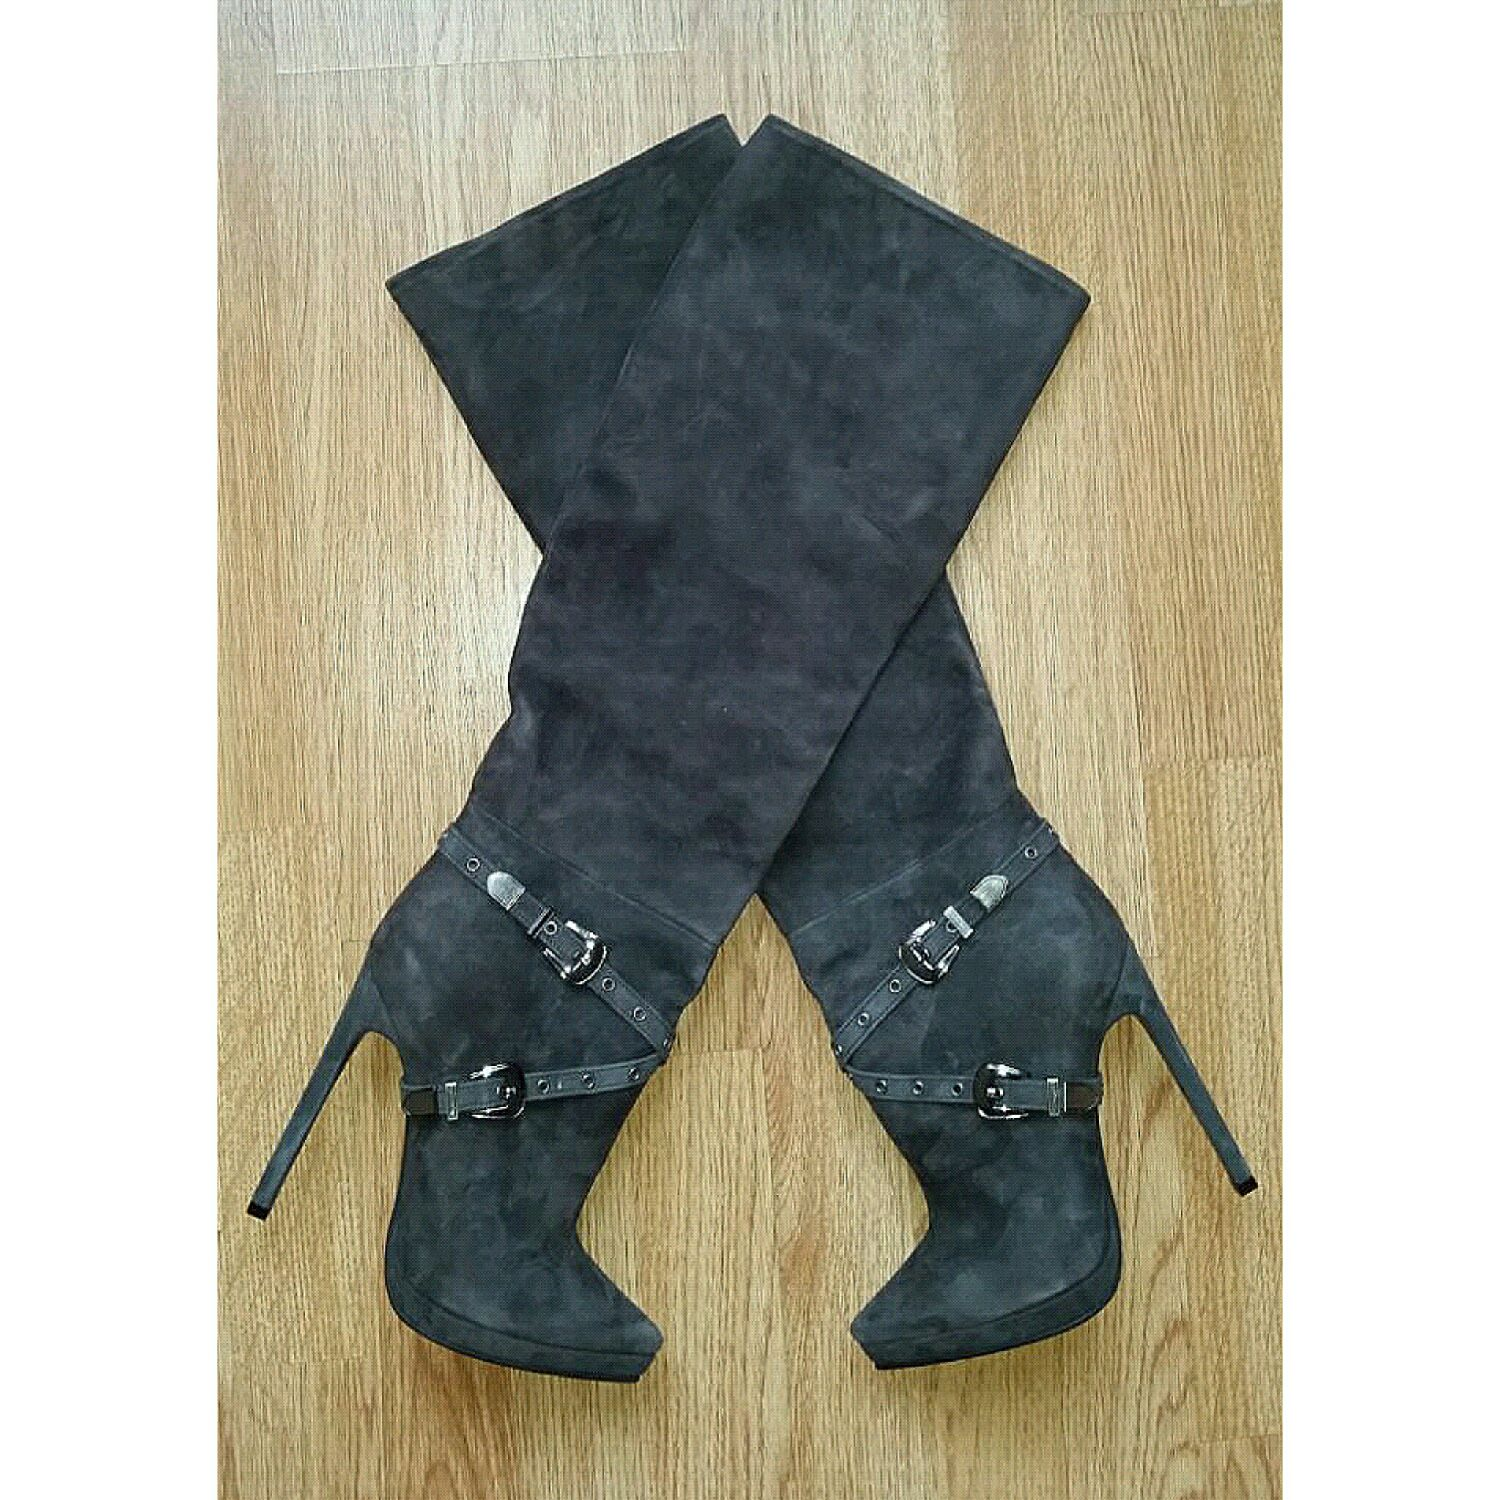 Boots handmade with the addition of accessories, High Boots, Barnaul,  Фото №1